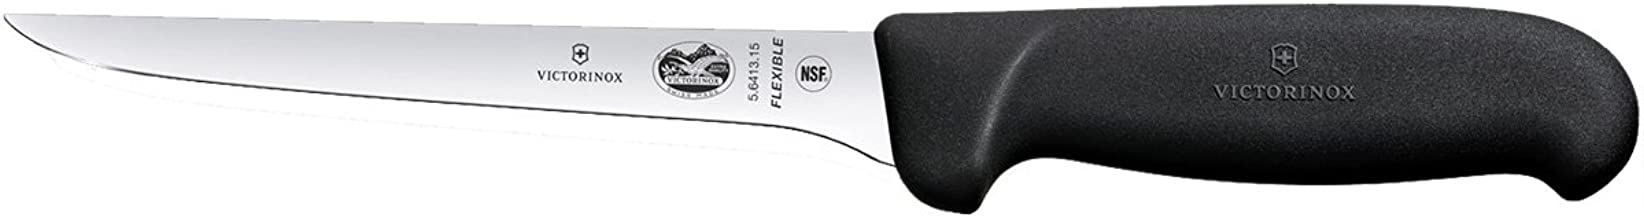 Victorinox Swiss Army 6 Inch Swiss Classic Boning Knife with Flexible Blade